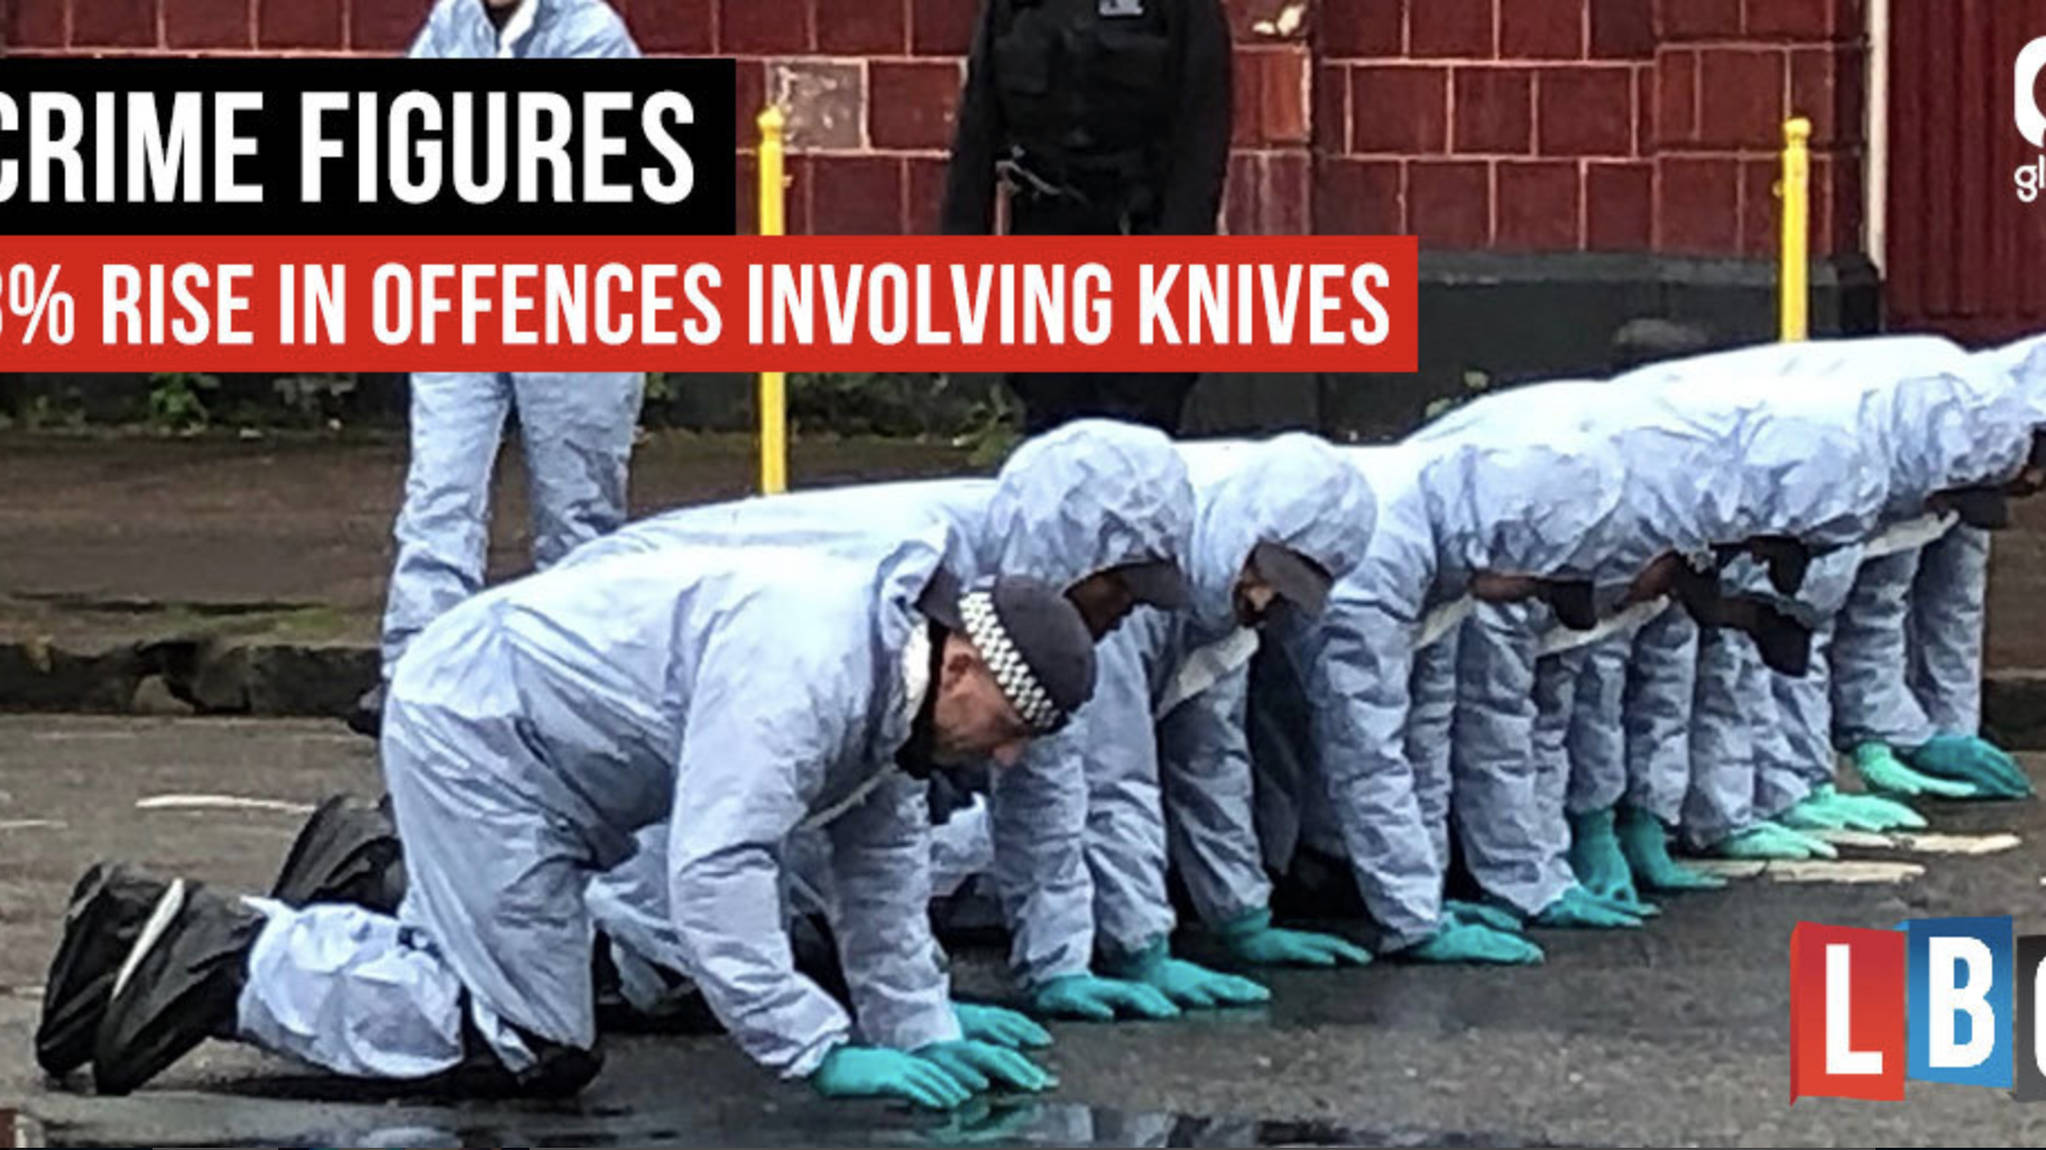 Knife Crime Hits All-Time High With Offences Up By 8%